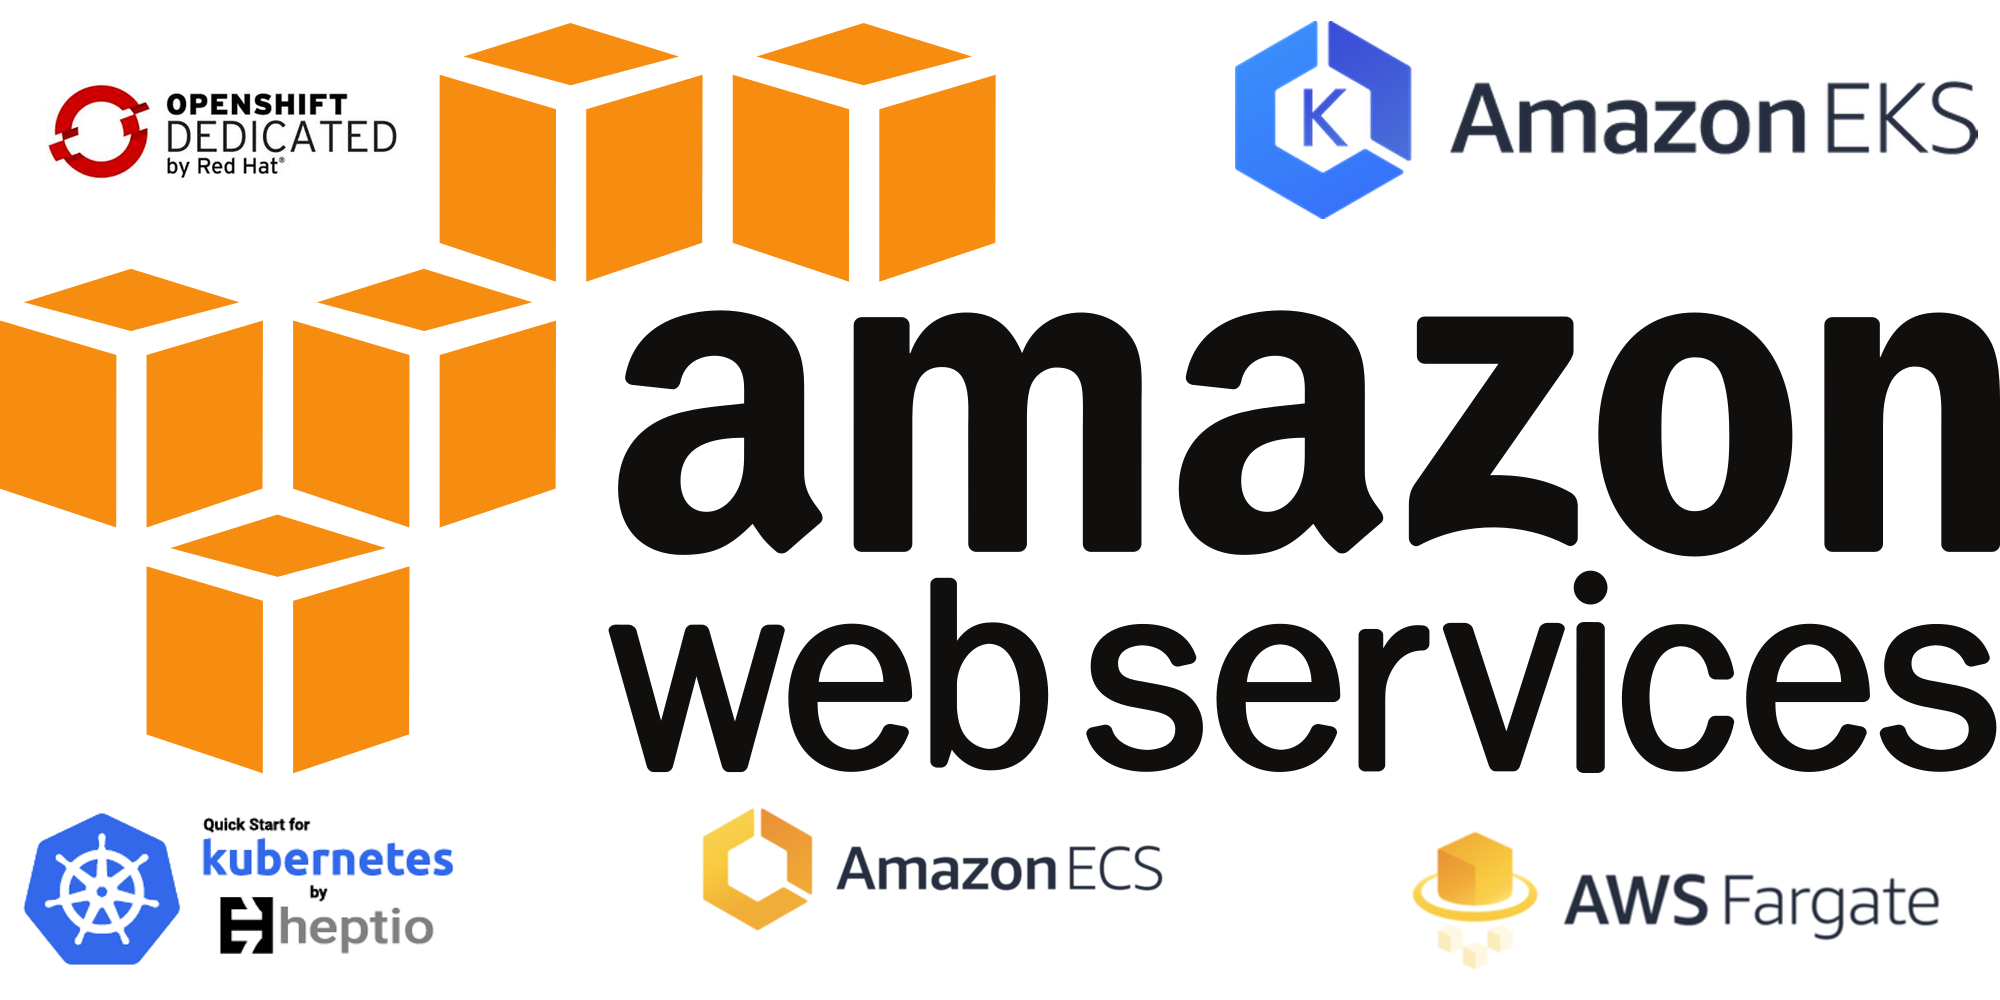 7 ways to do containers on AWS - By